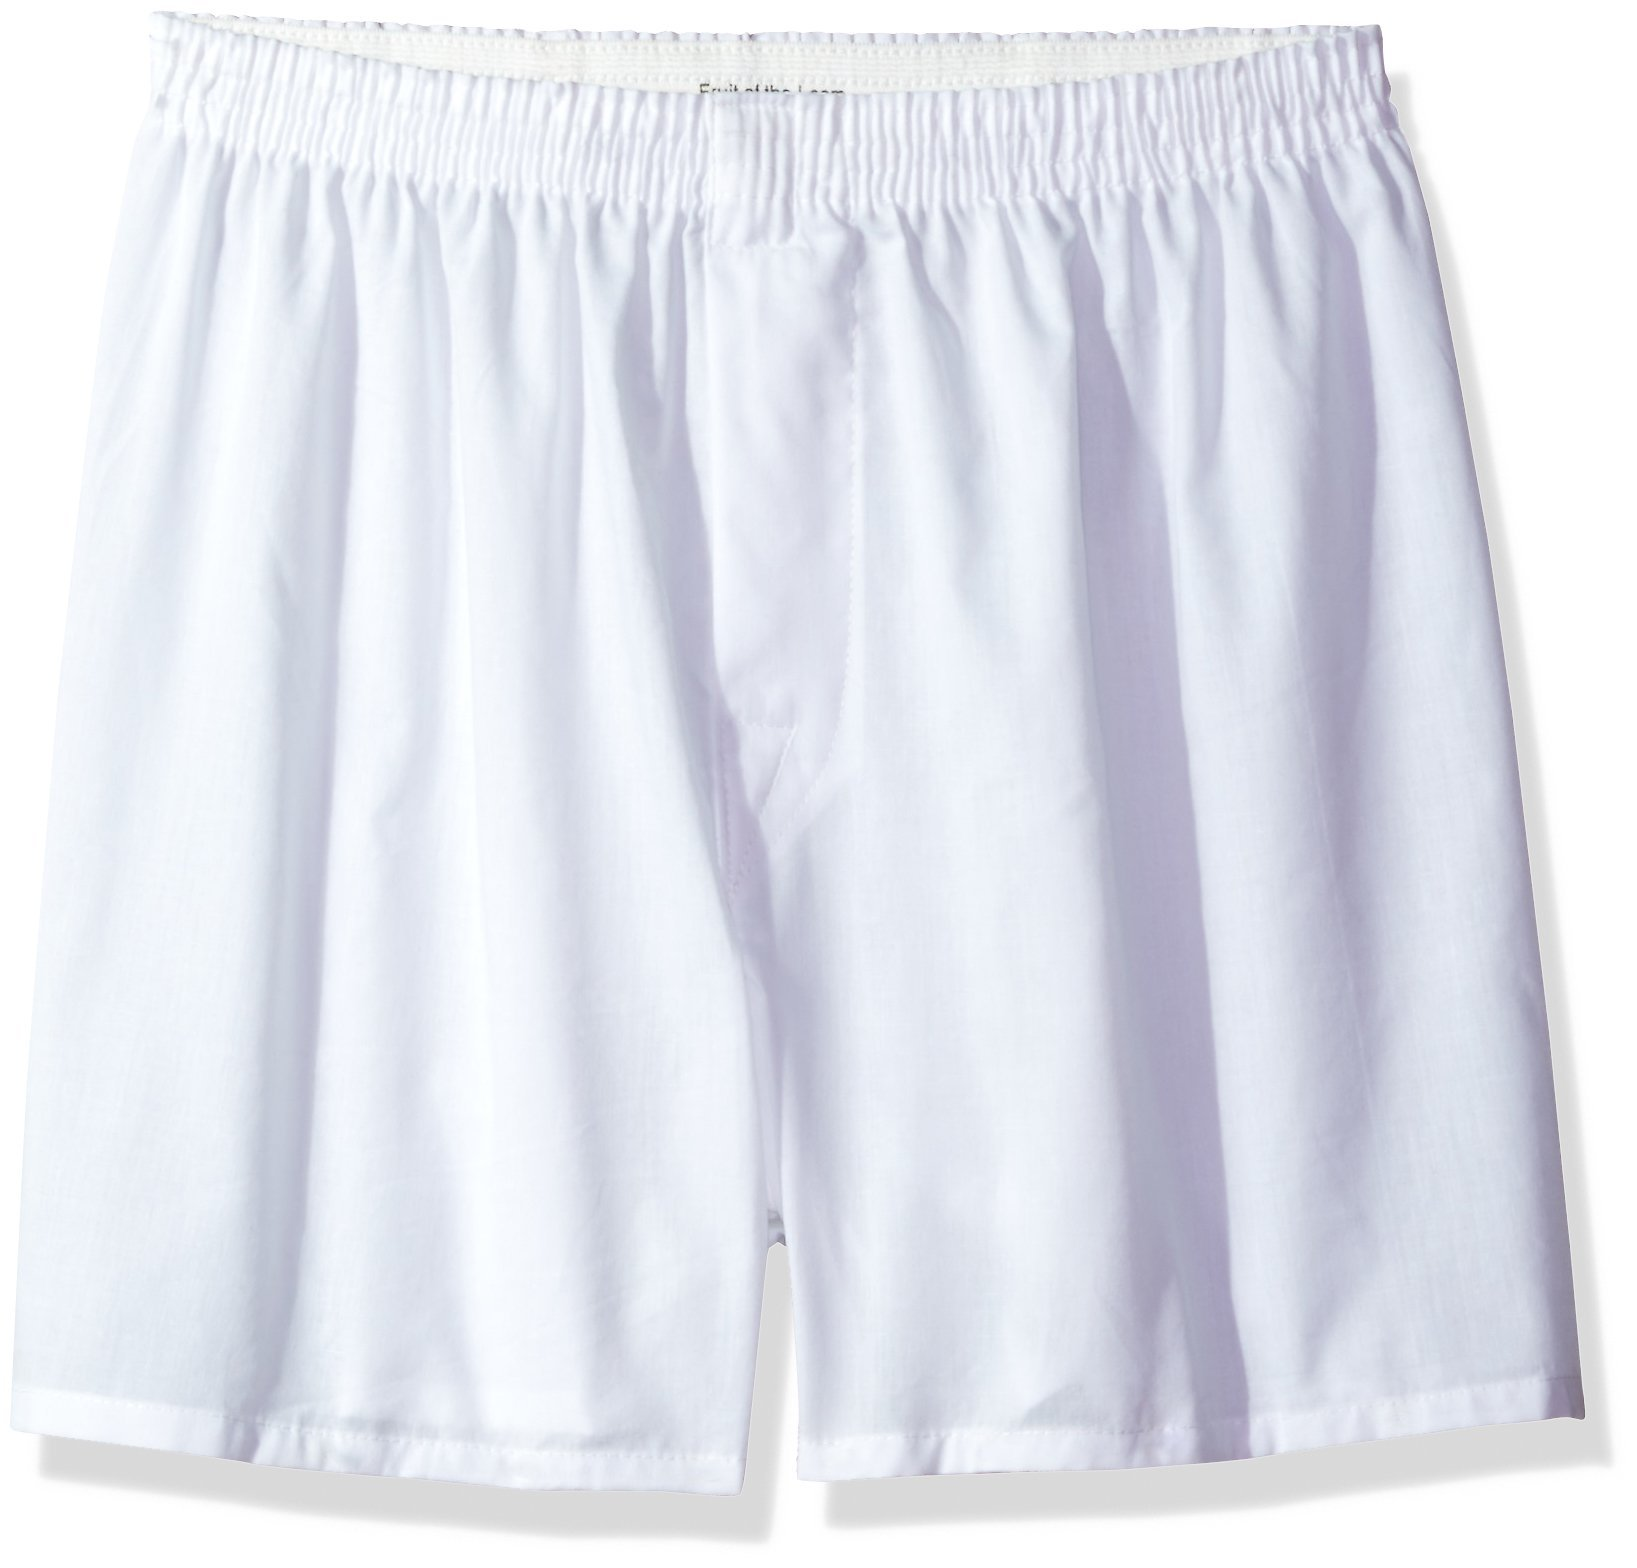 Fruit of the Loom Men's 5 Pack Boxer, White, Medium by Fruit of the Loom